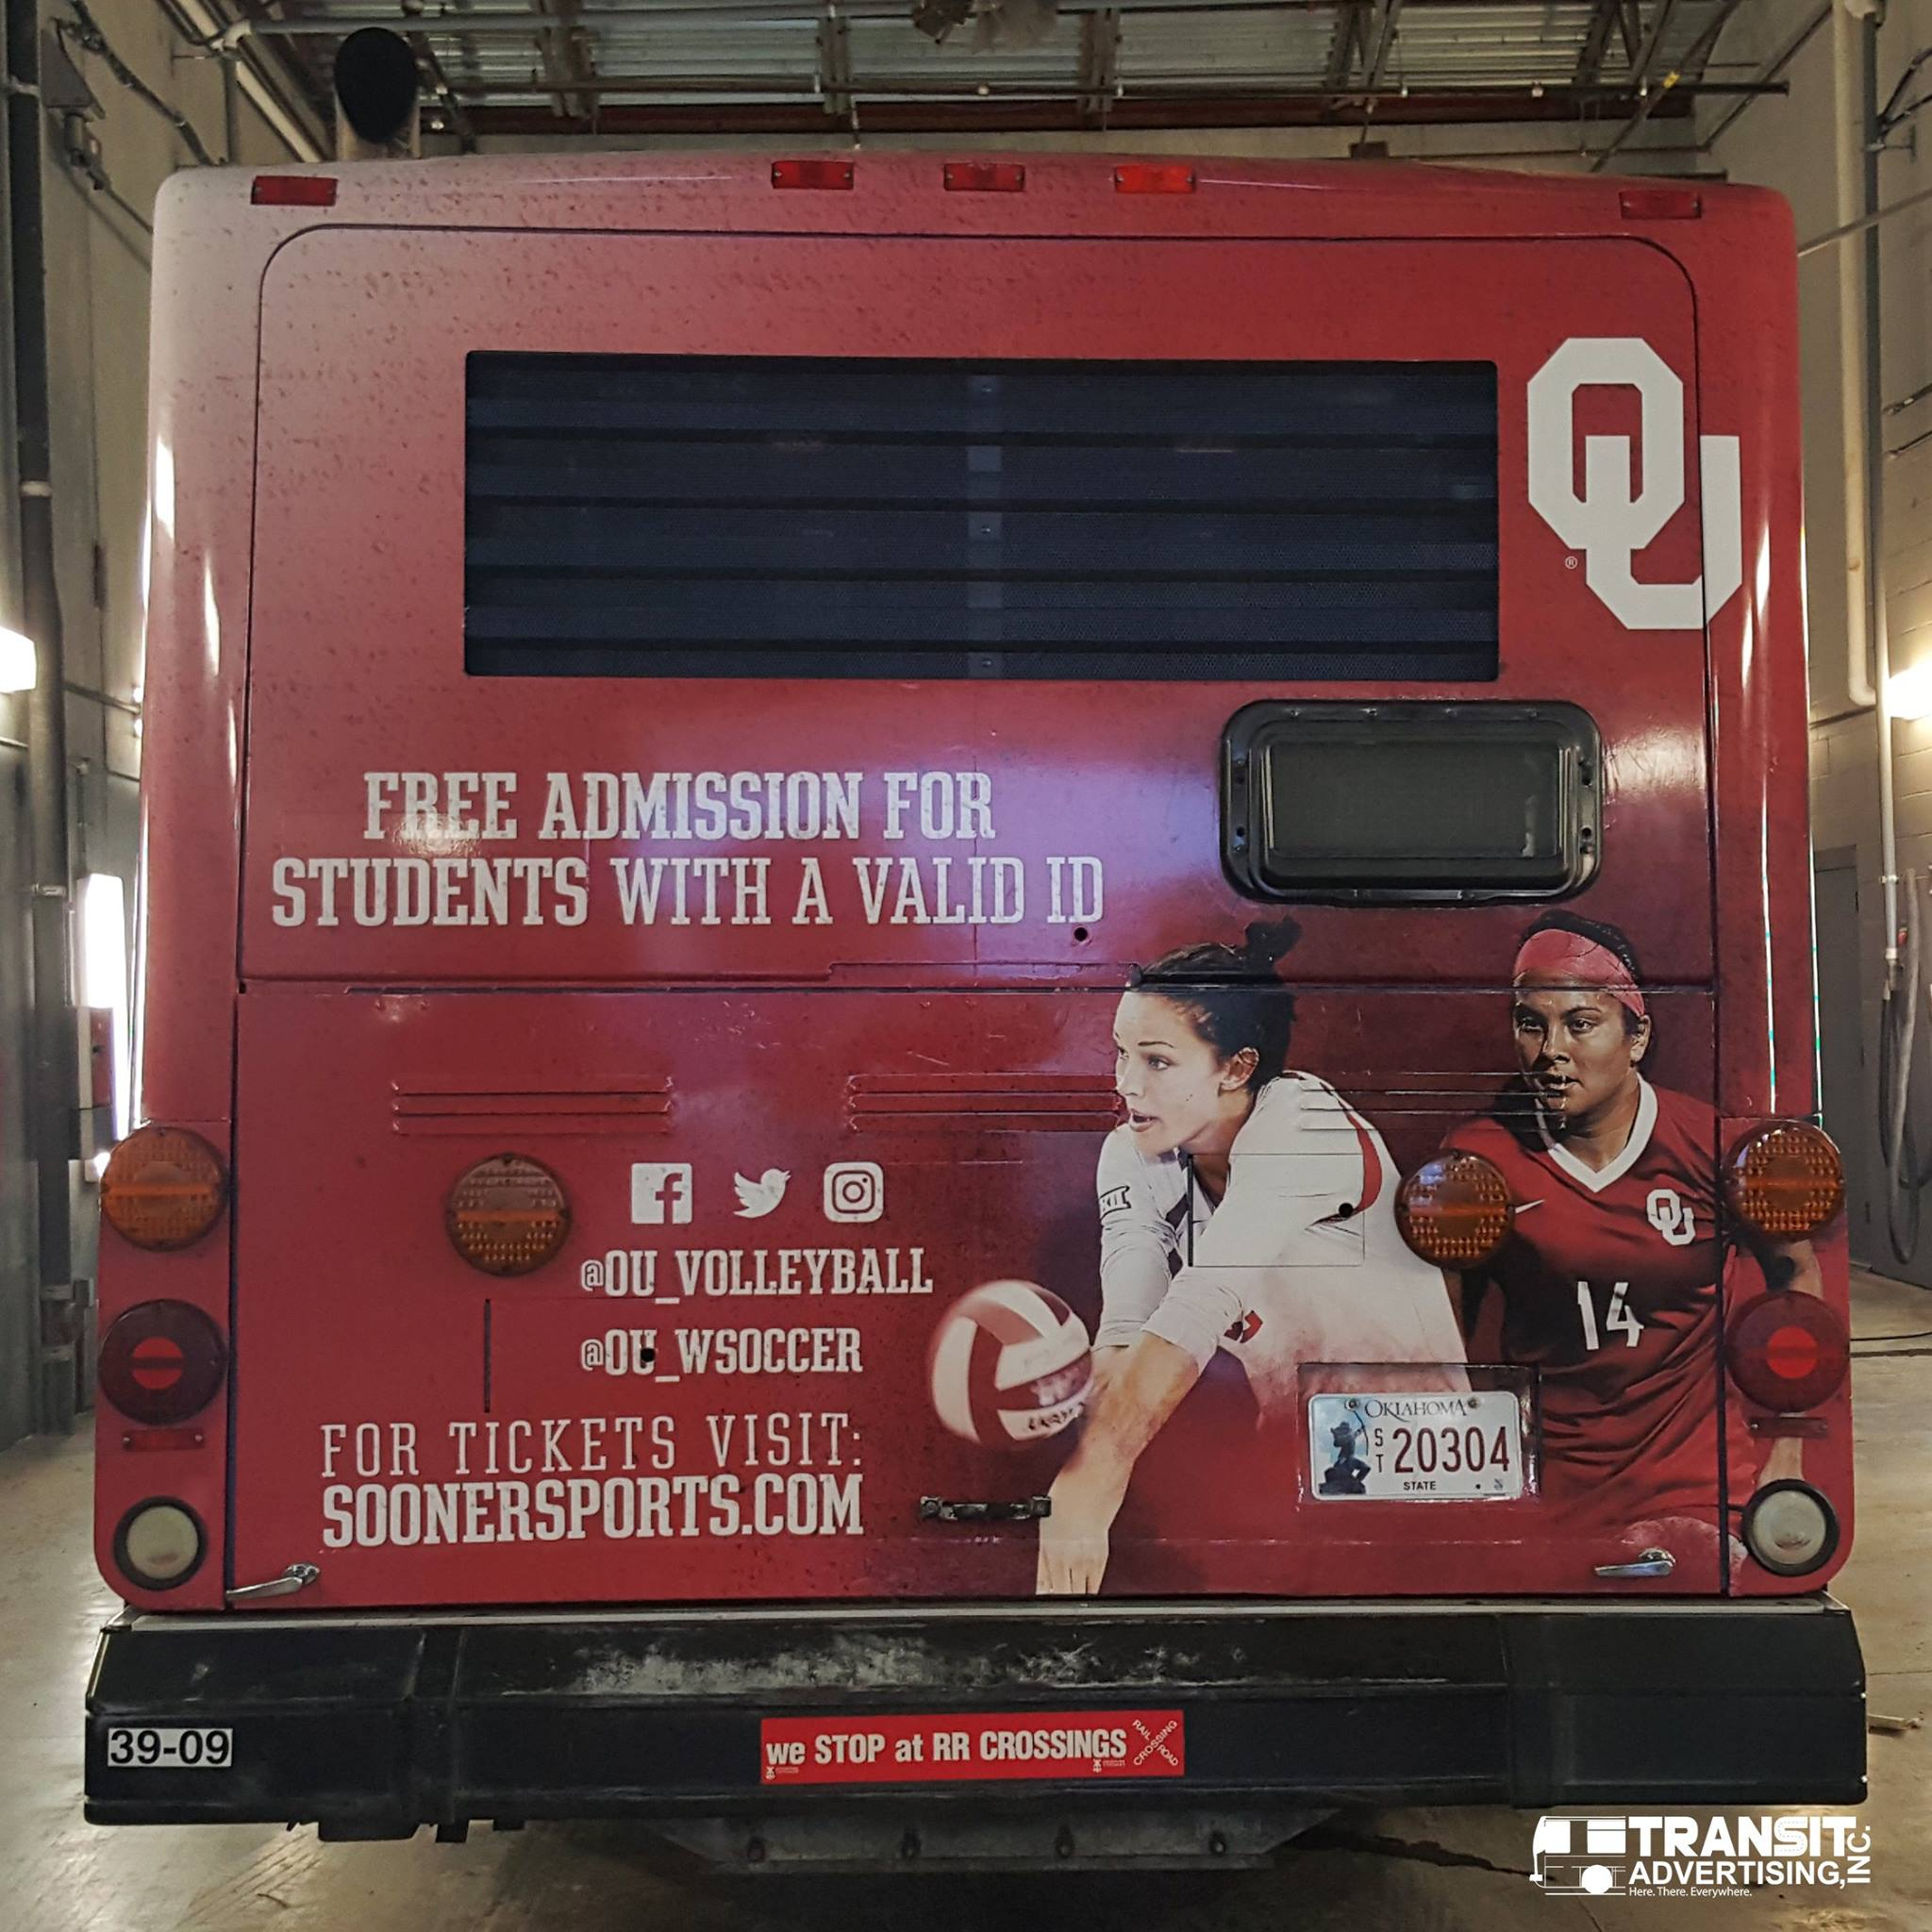 OU Volleyball